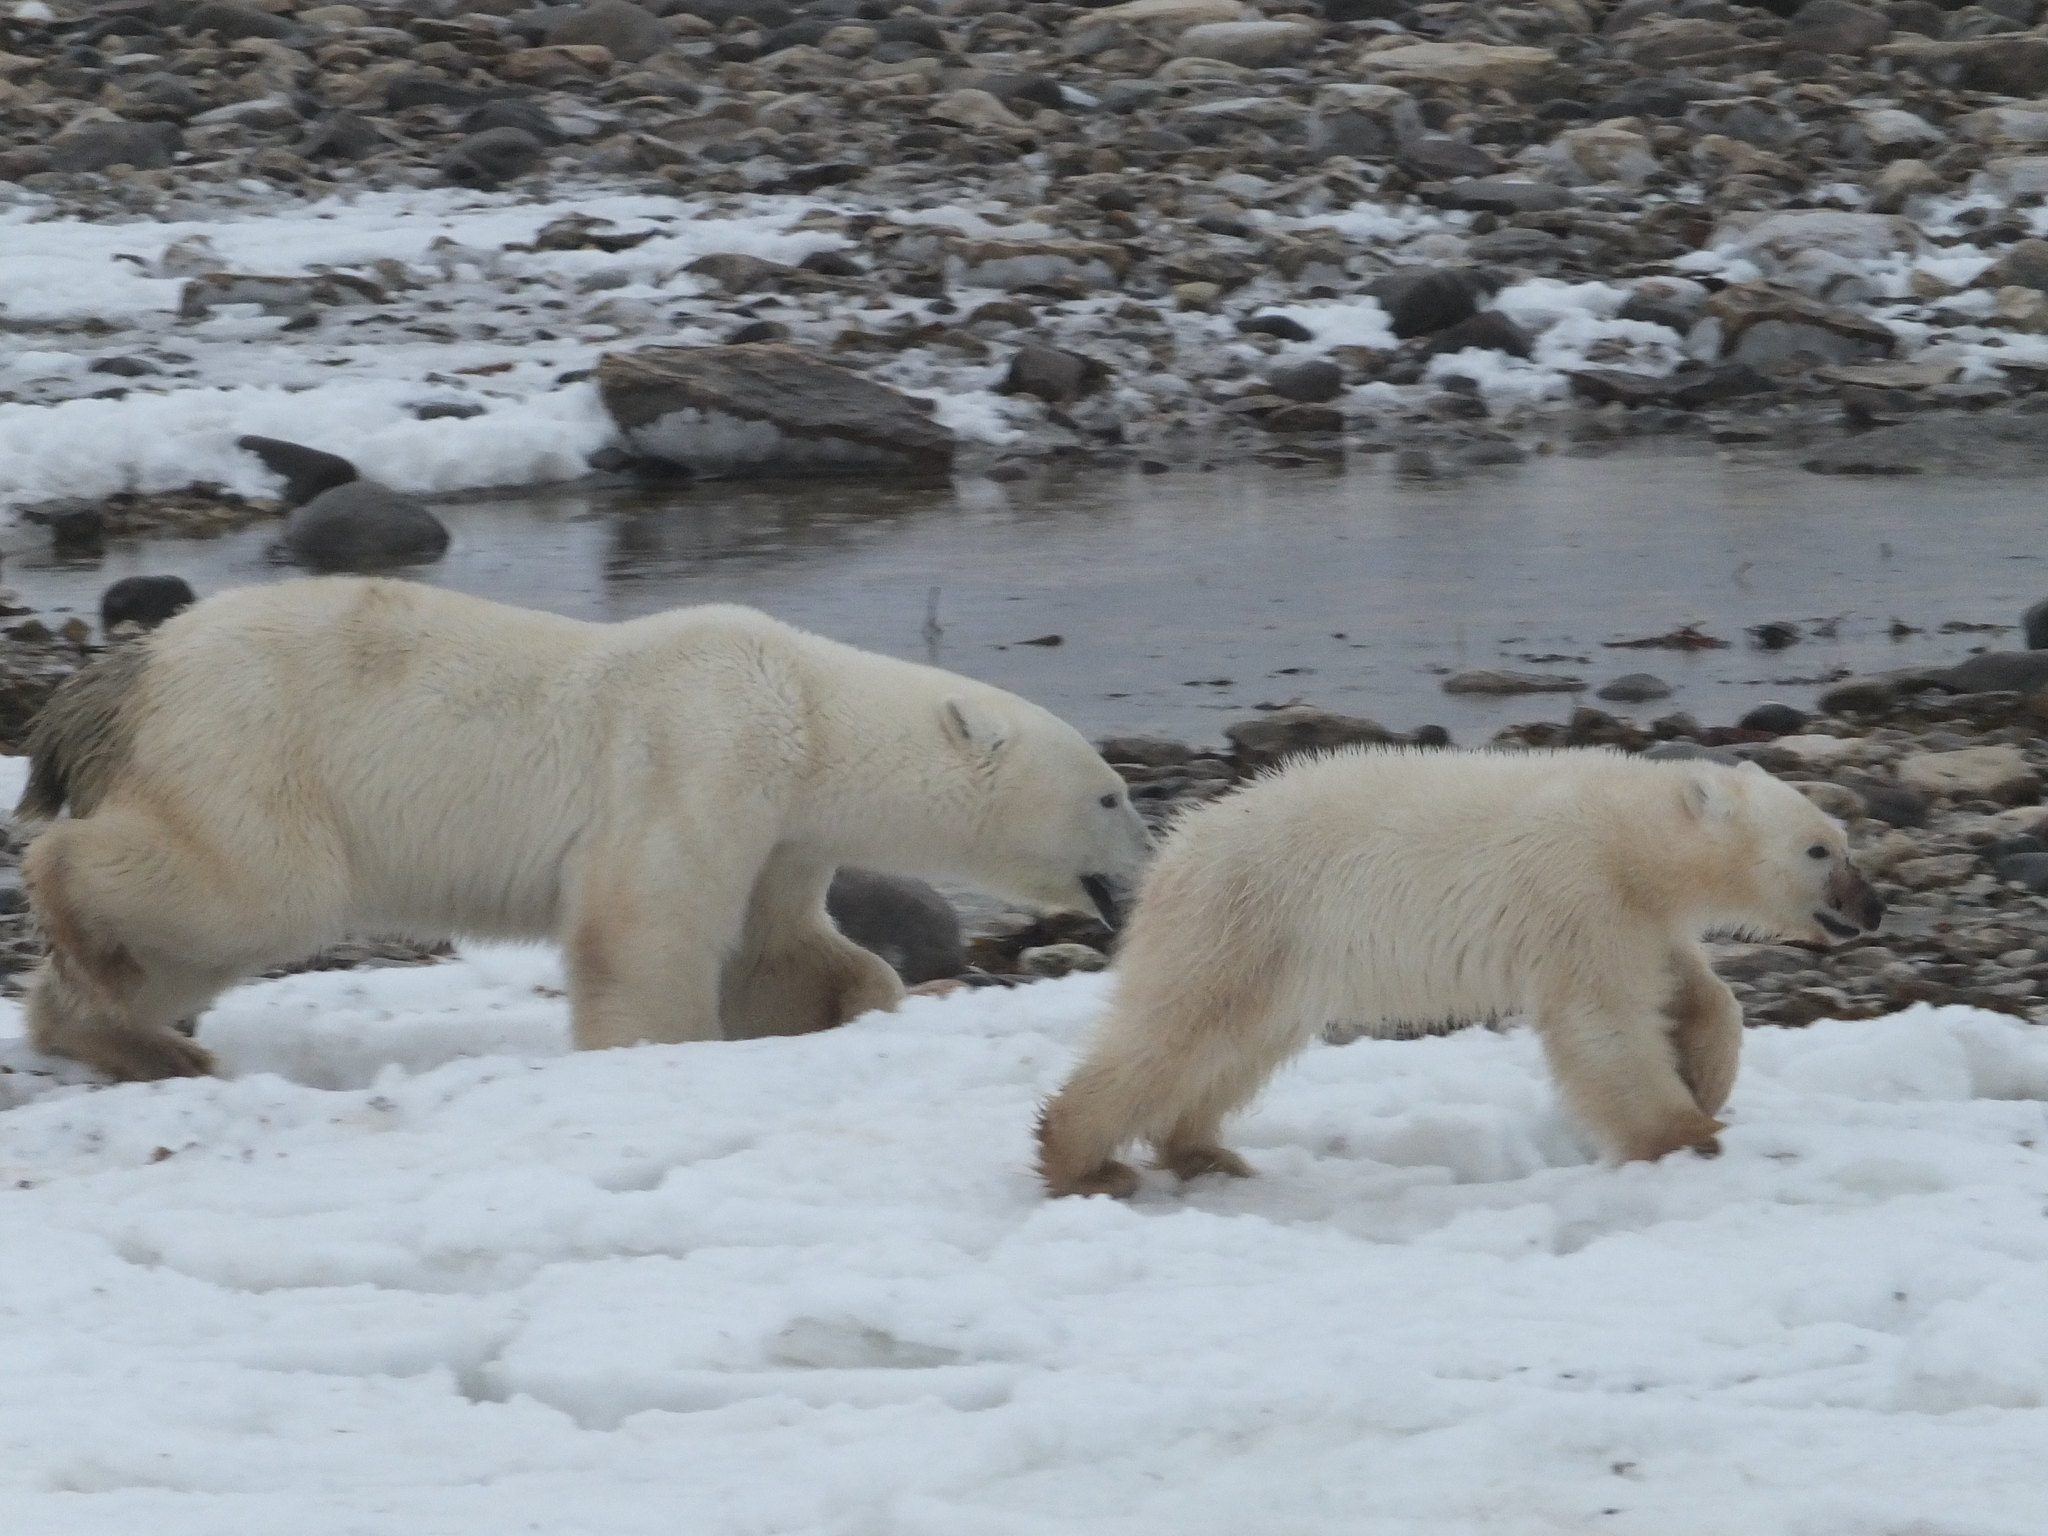 A mother bear and her cub running on snow and rocks